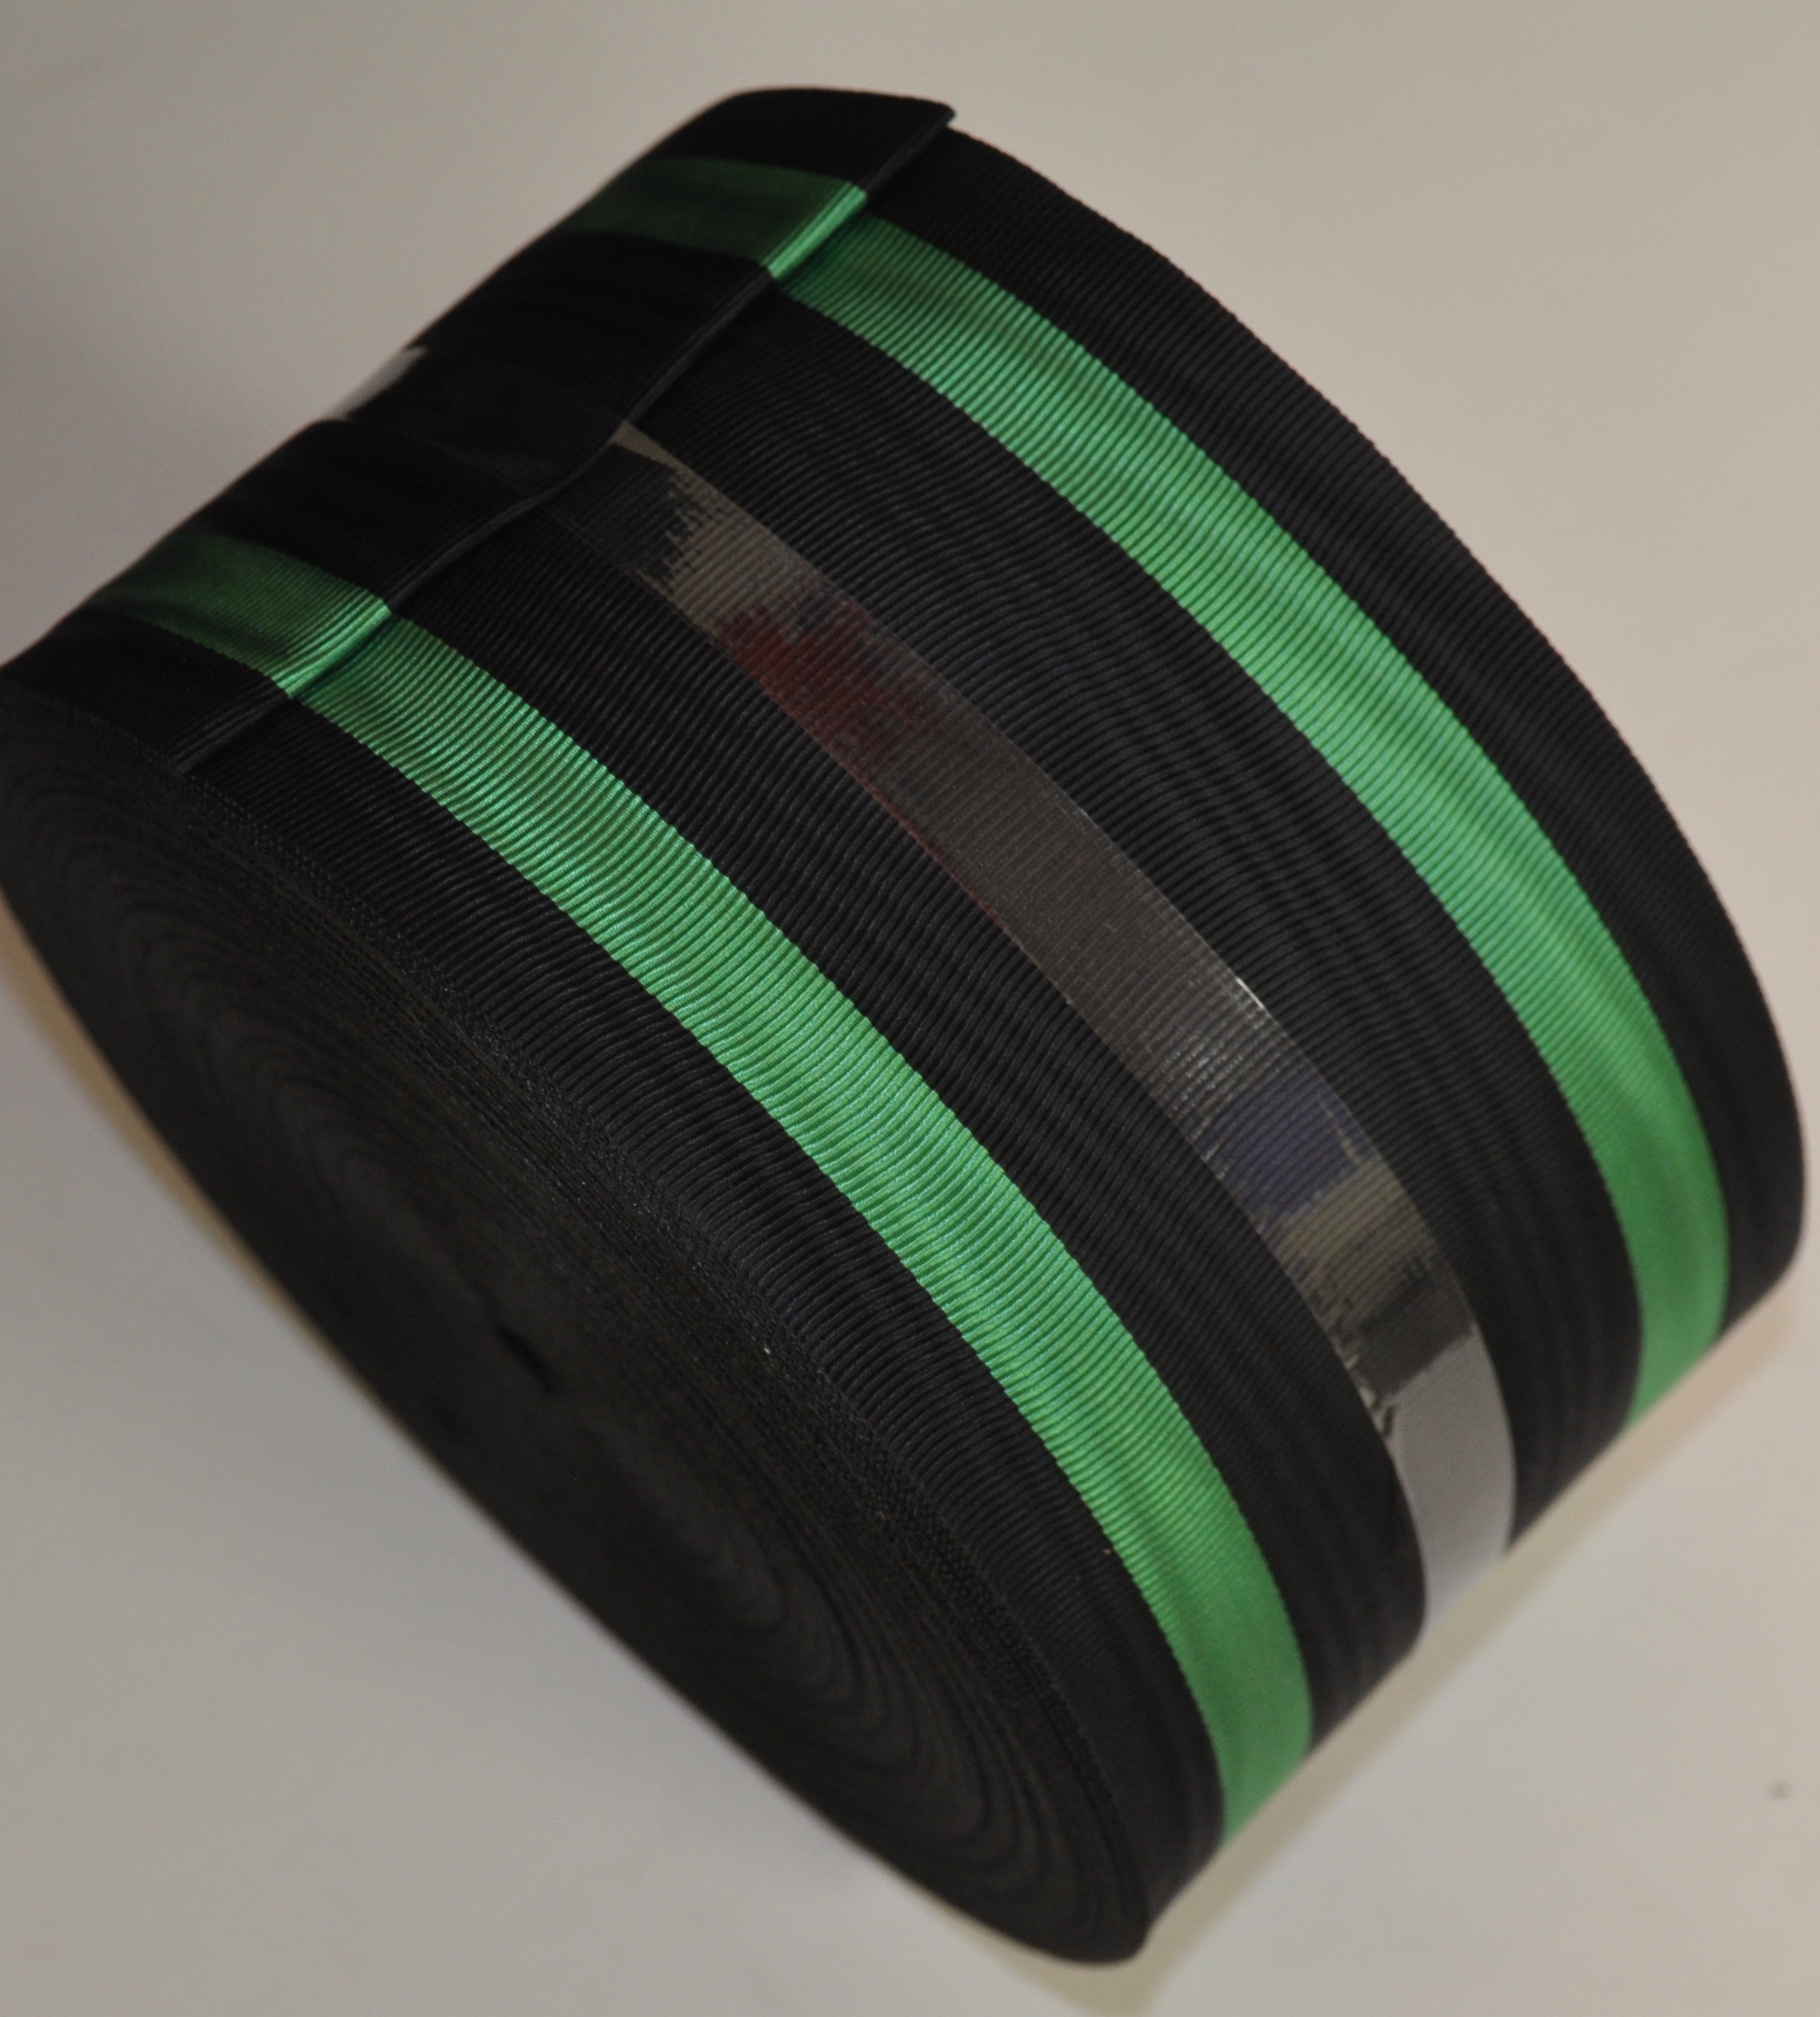 Black Ribbon with 2 Thick Green Bands - watermarked - 75mm (per meter)